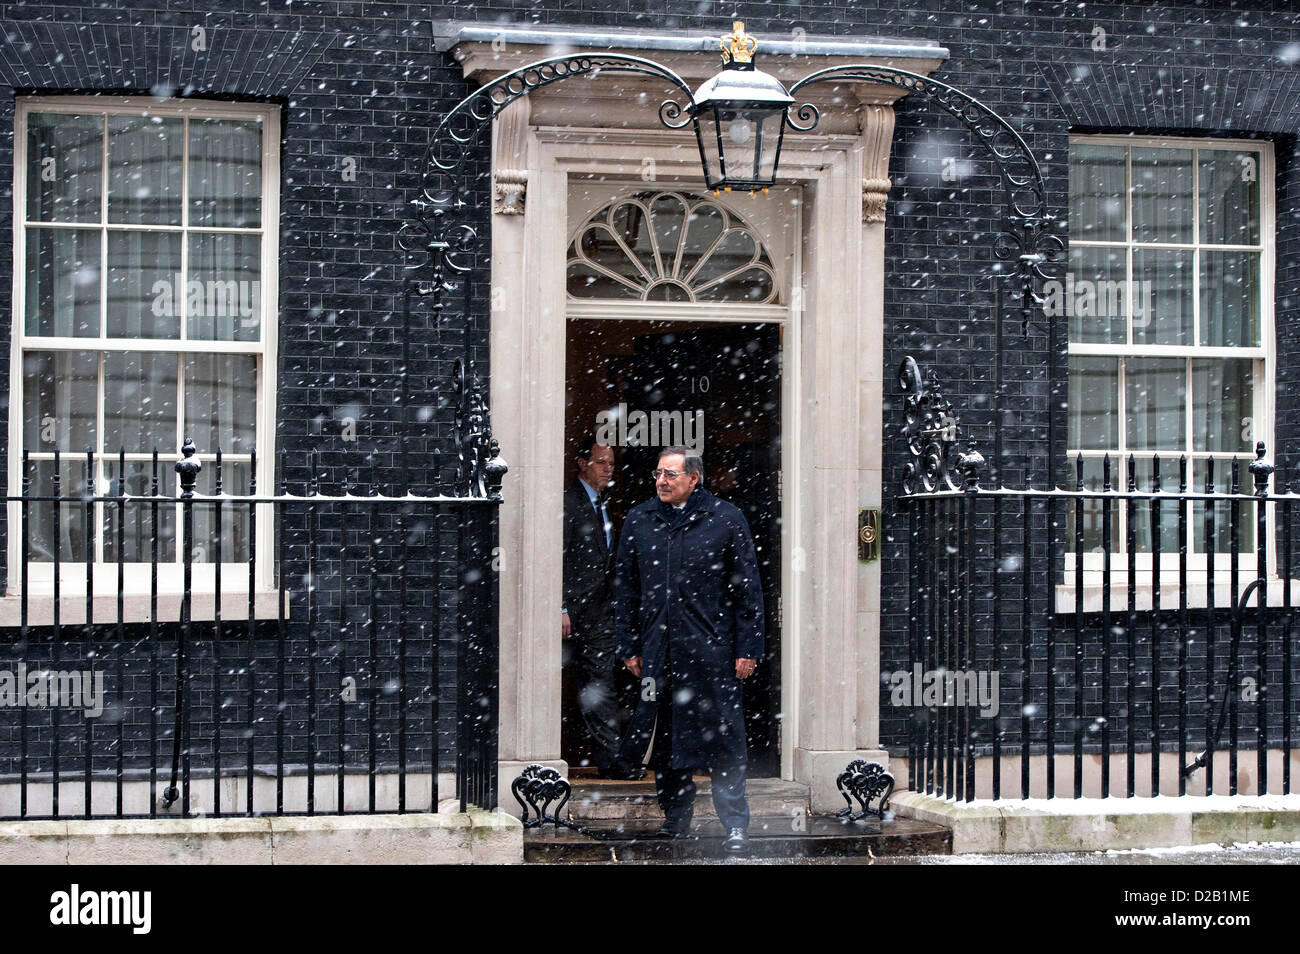 US Secretary of Defense Leon Panetta exits 10 Downing Street on a snowy day after a meeting with British Prime Minister - Stock Image